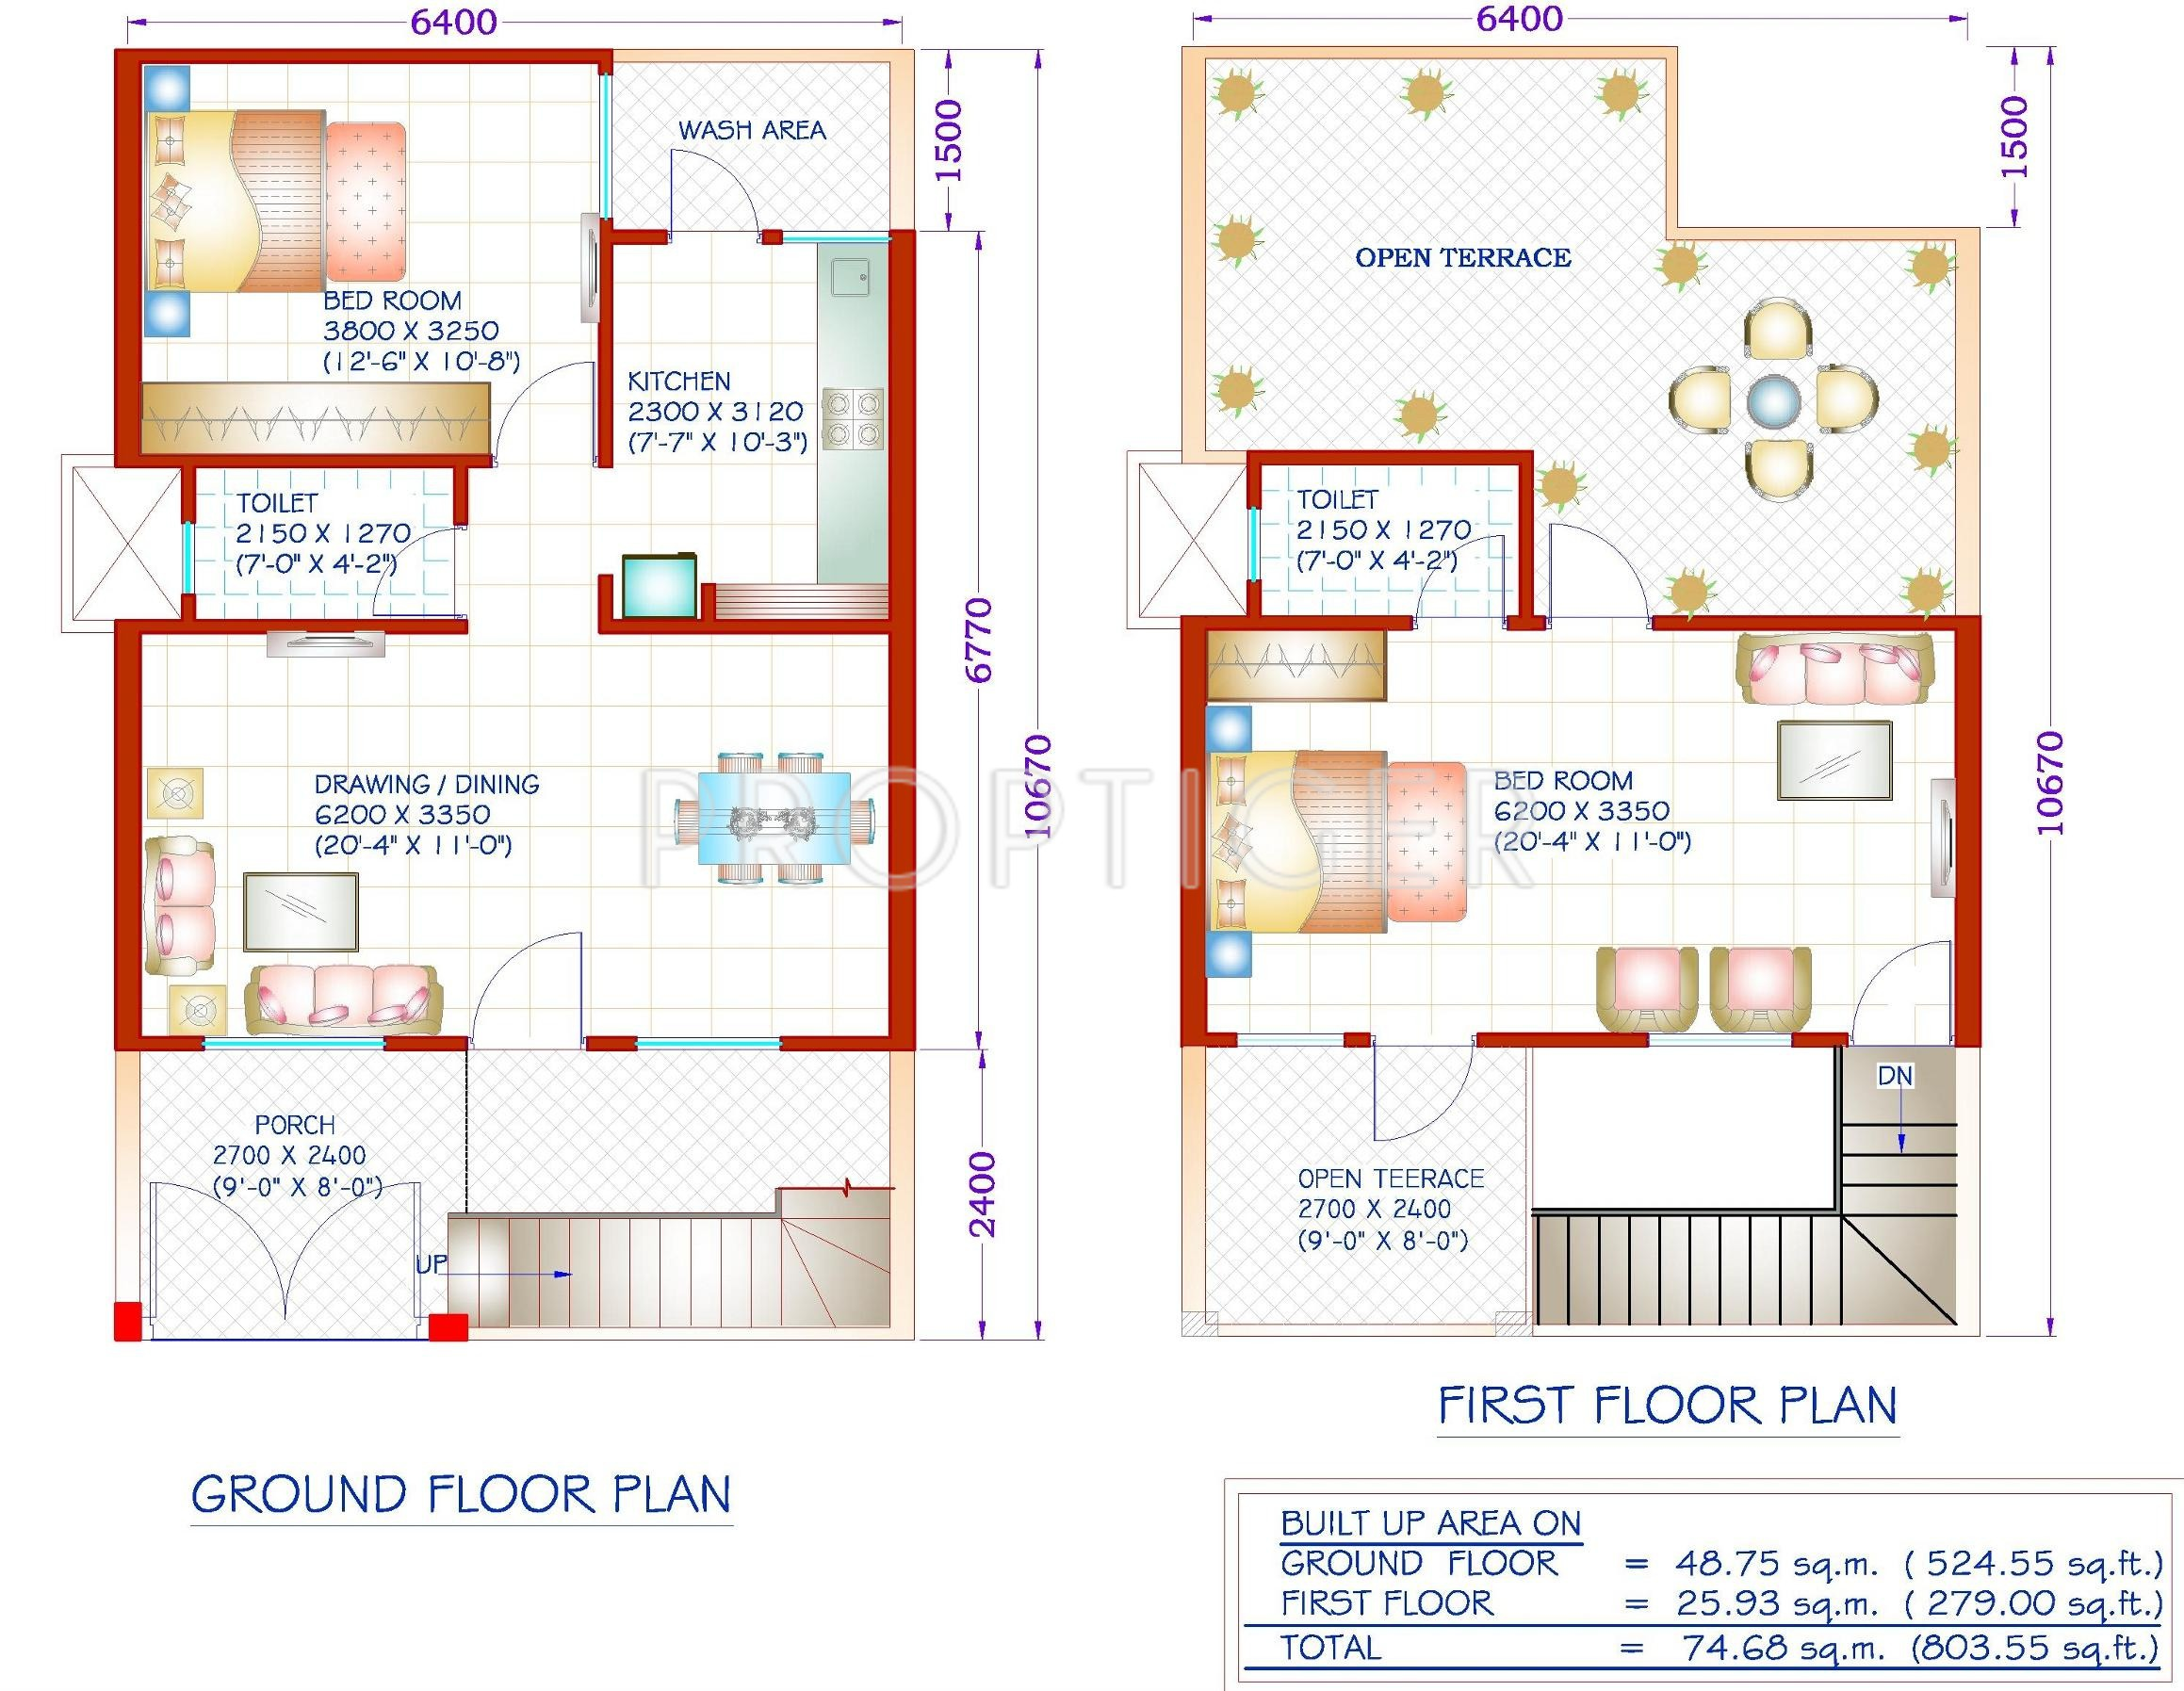 600 sq ft house plans indian style with car parking for House plans for 1200 sq ft in tamilnadu